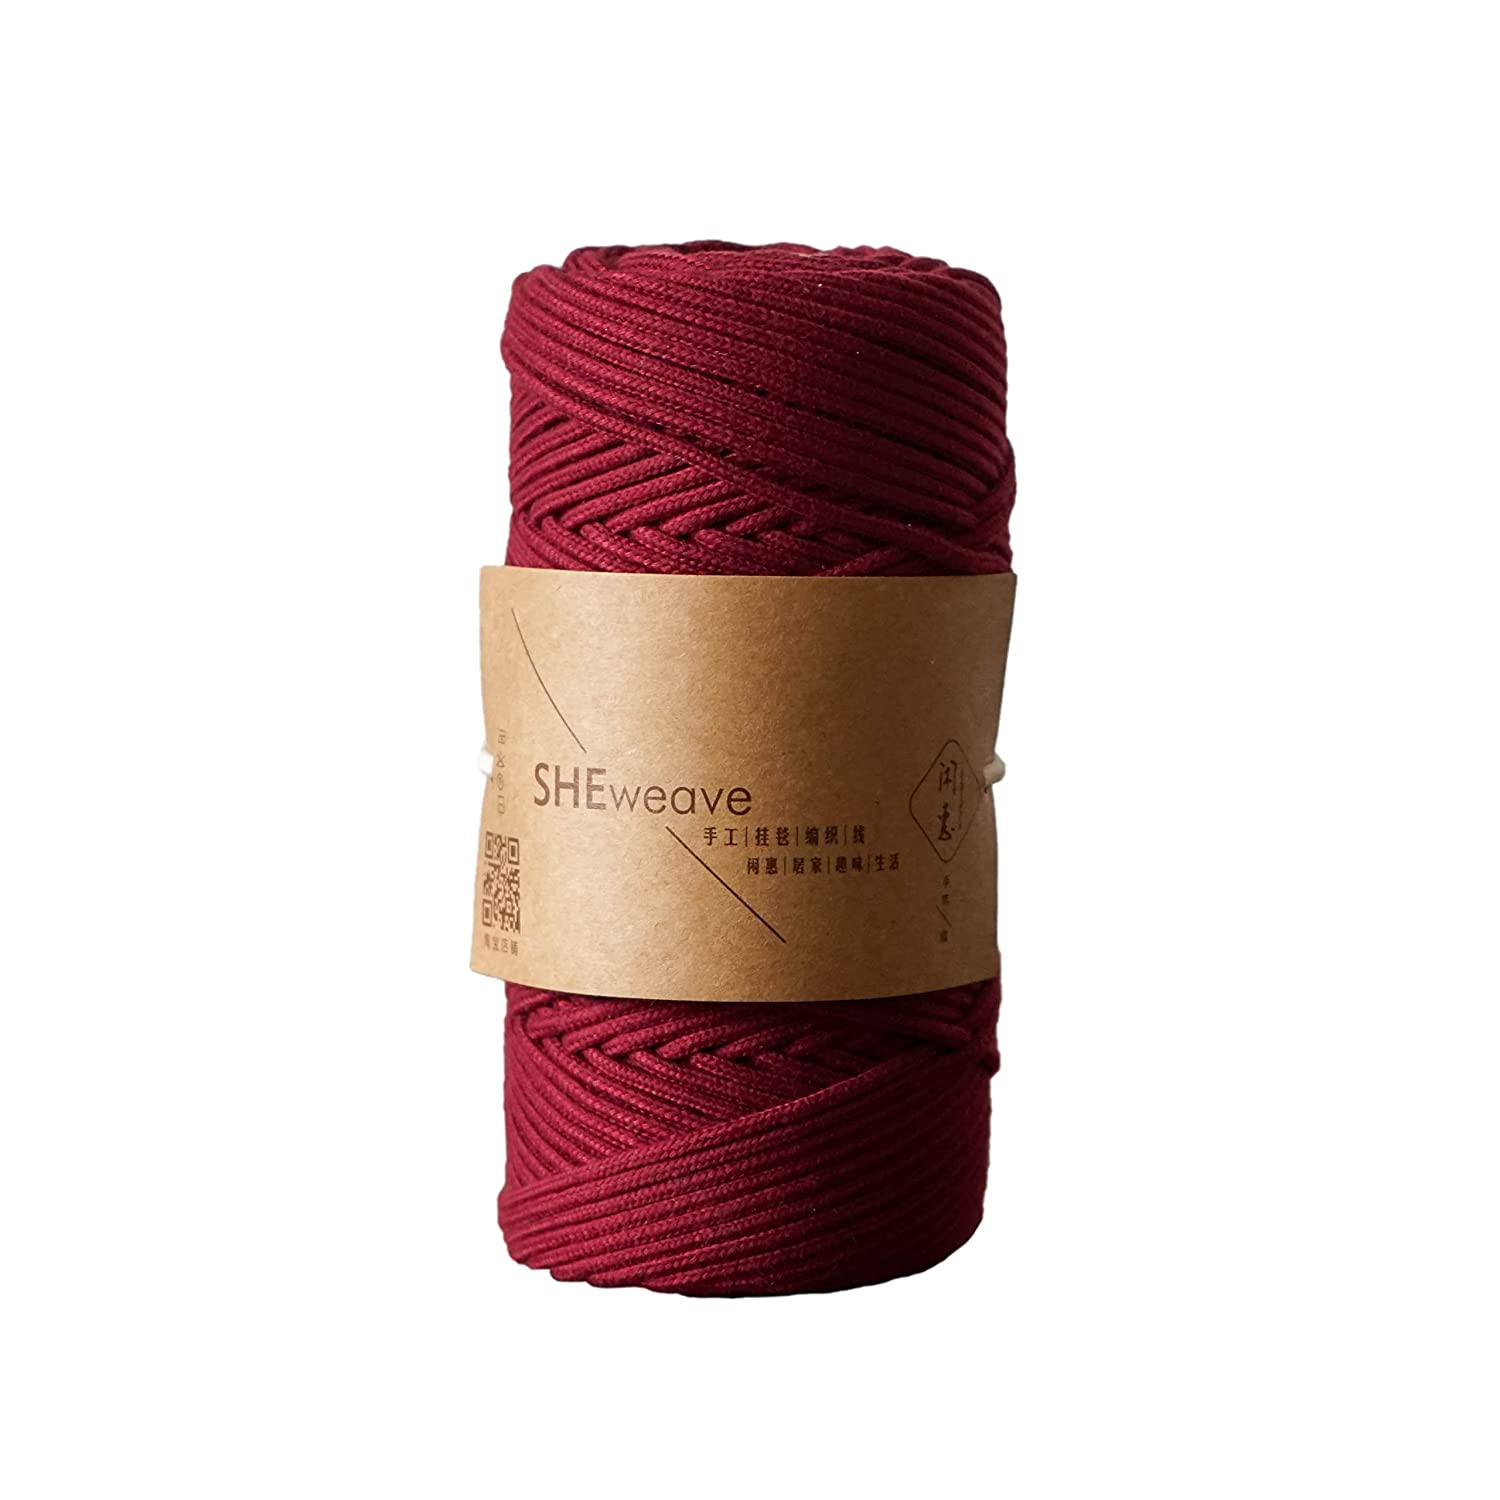 Wine red, 3mm x 100m Natural Cotton Macrame Cord Rope,Braided 3mm 1//8inch 110 Yards for Plant Hanger Craft Wall Hanging Tapestry Handmade DIY Crafts